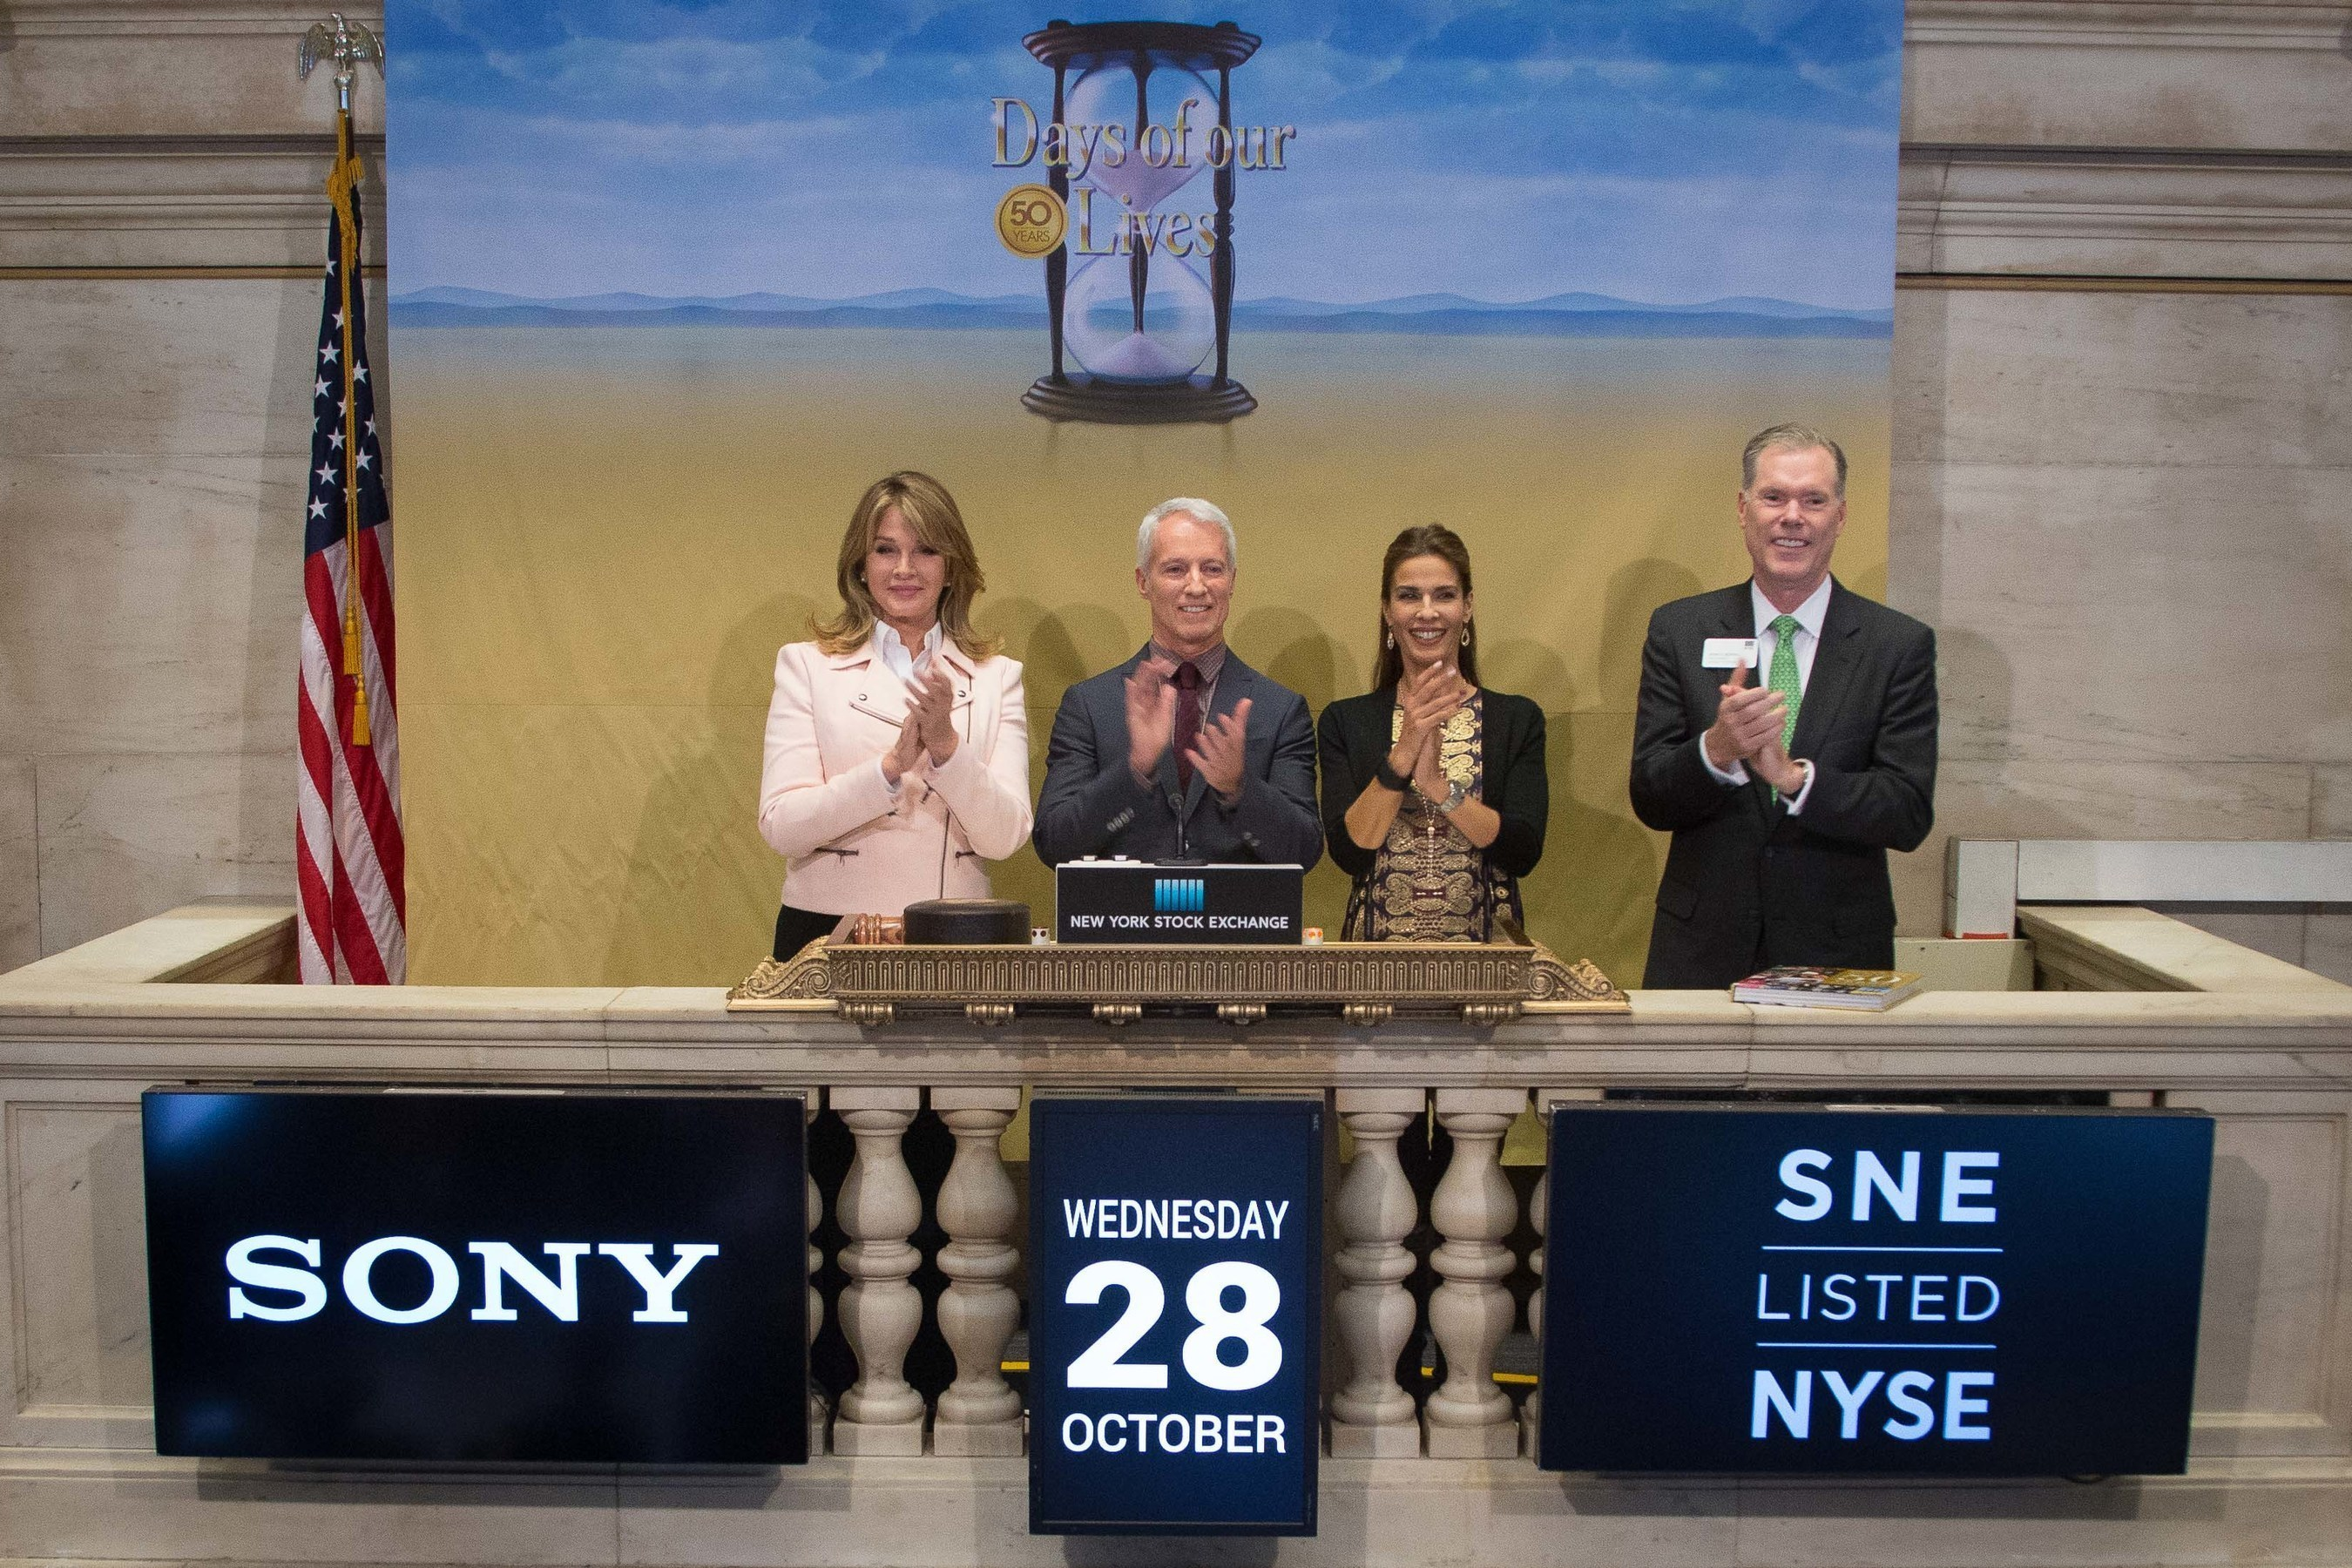 Days of our Lives Commemorates 50 Years at the NYSE